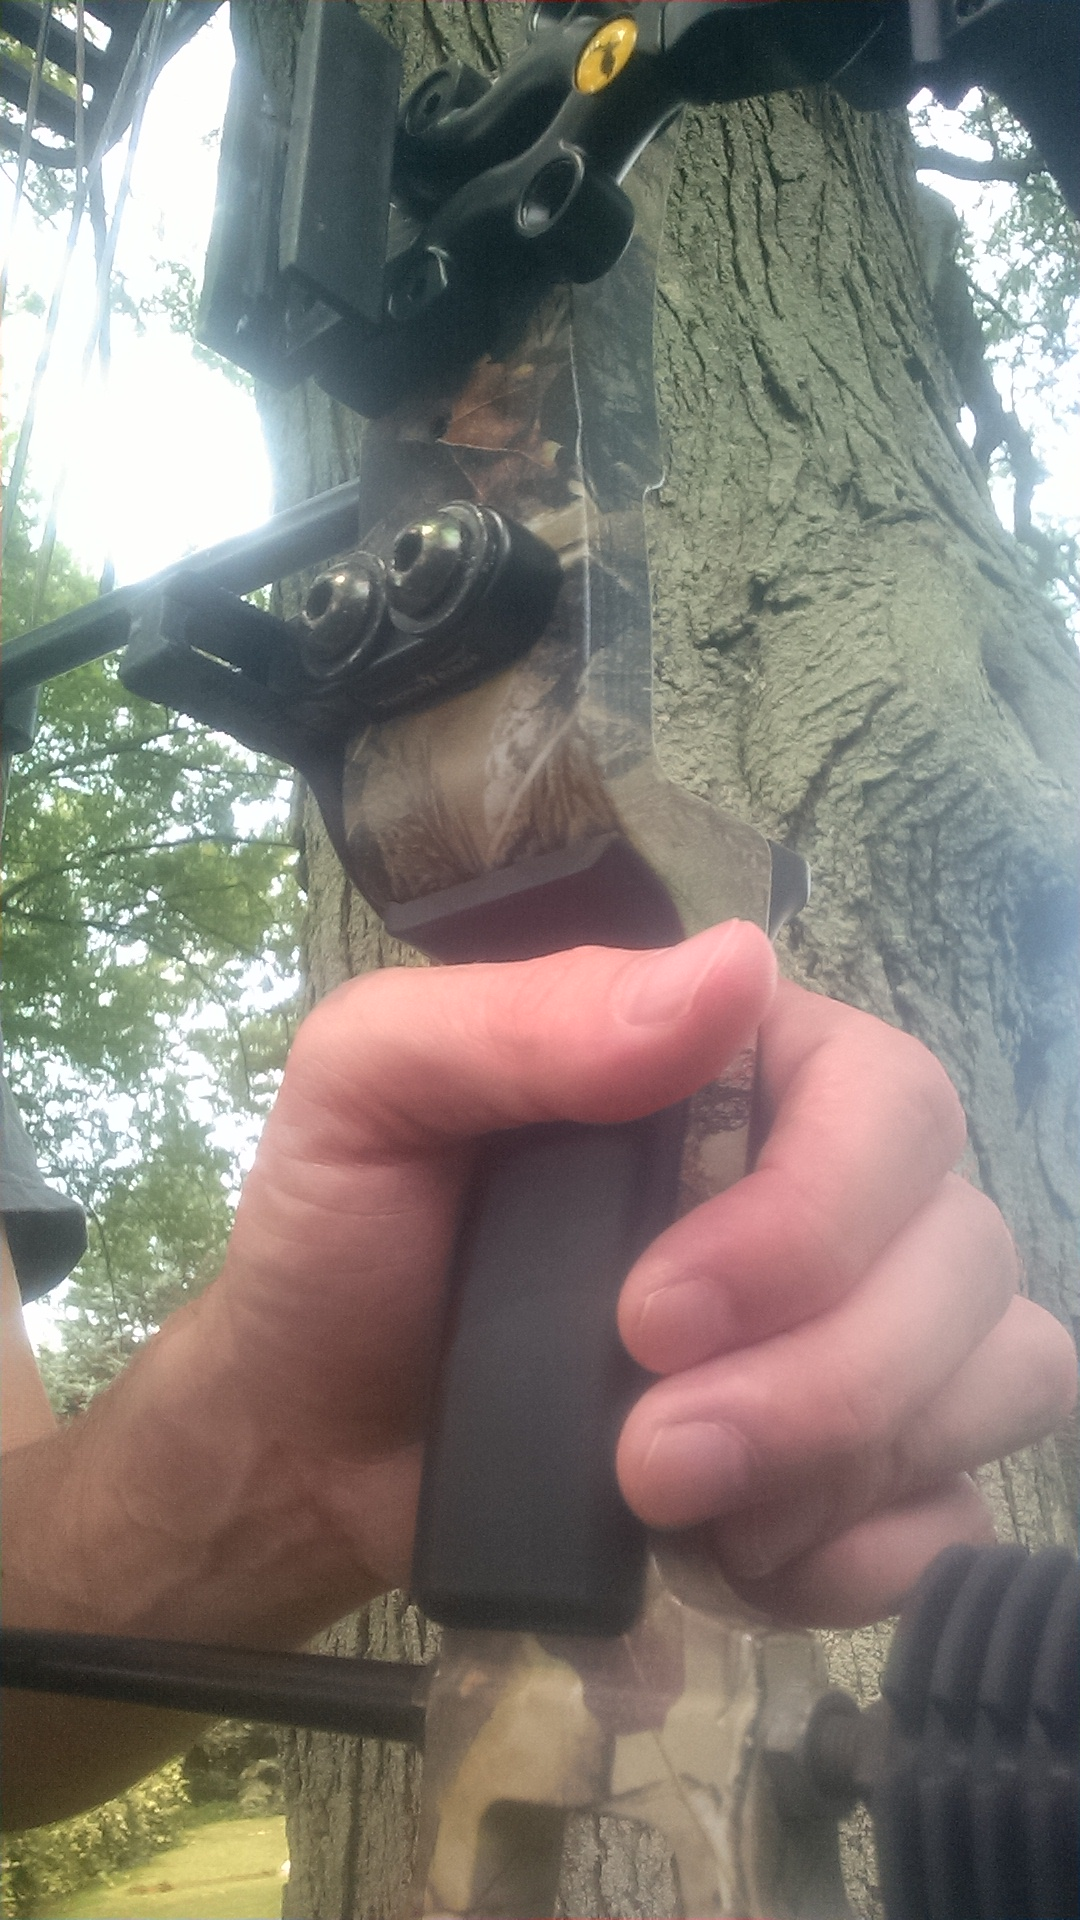 How to Shoot a Compound Bow - Grip